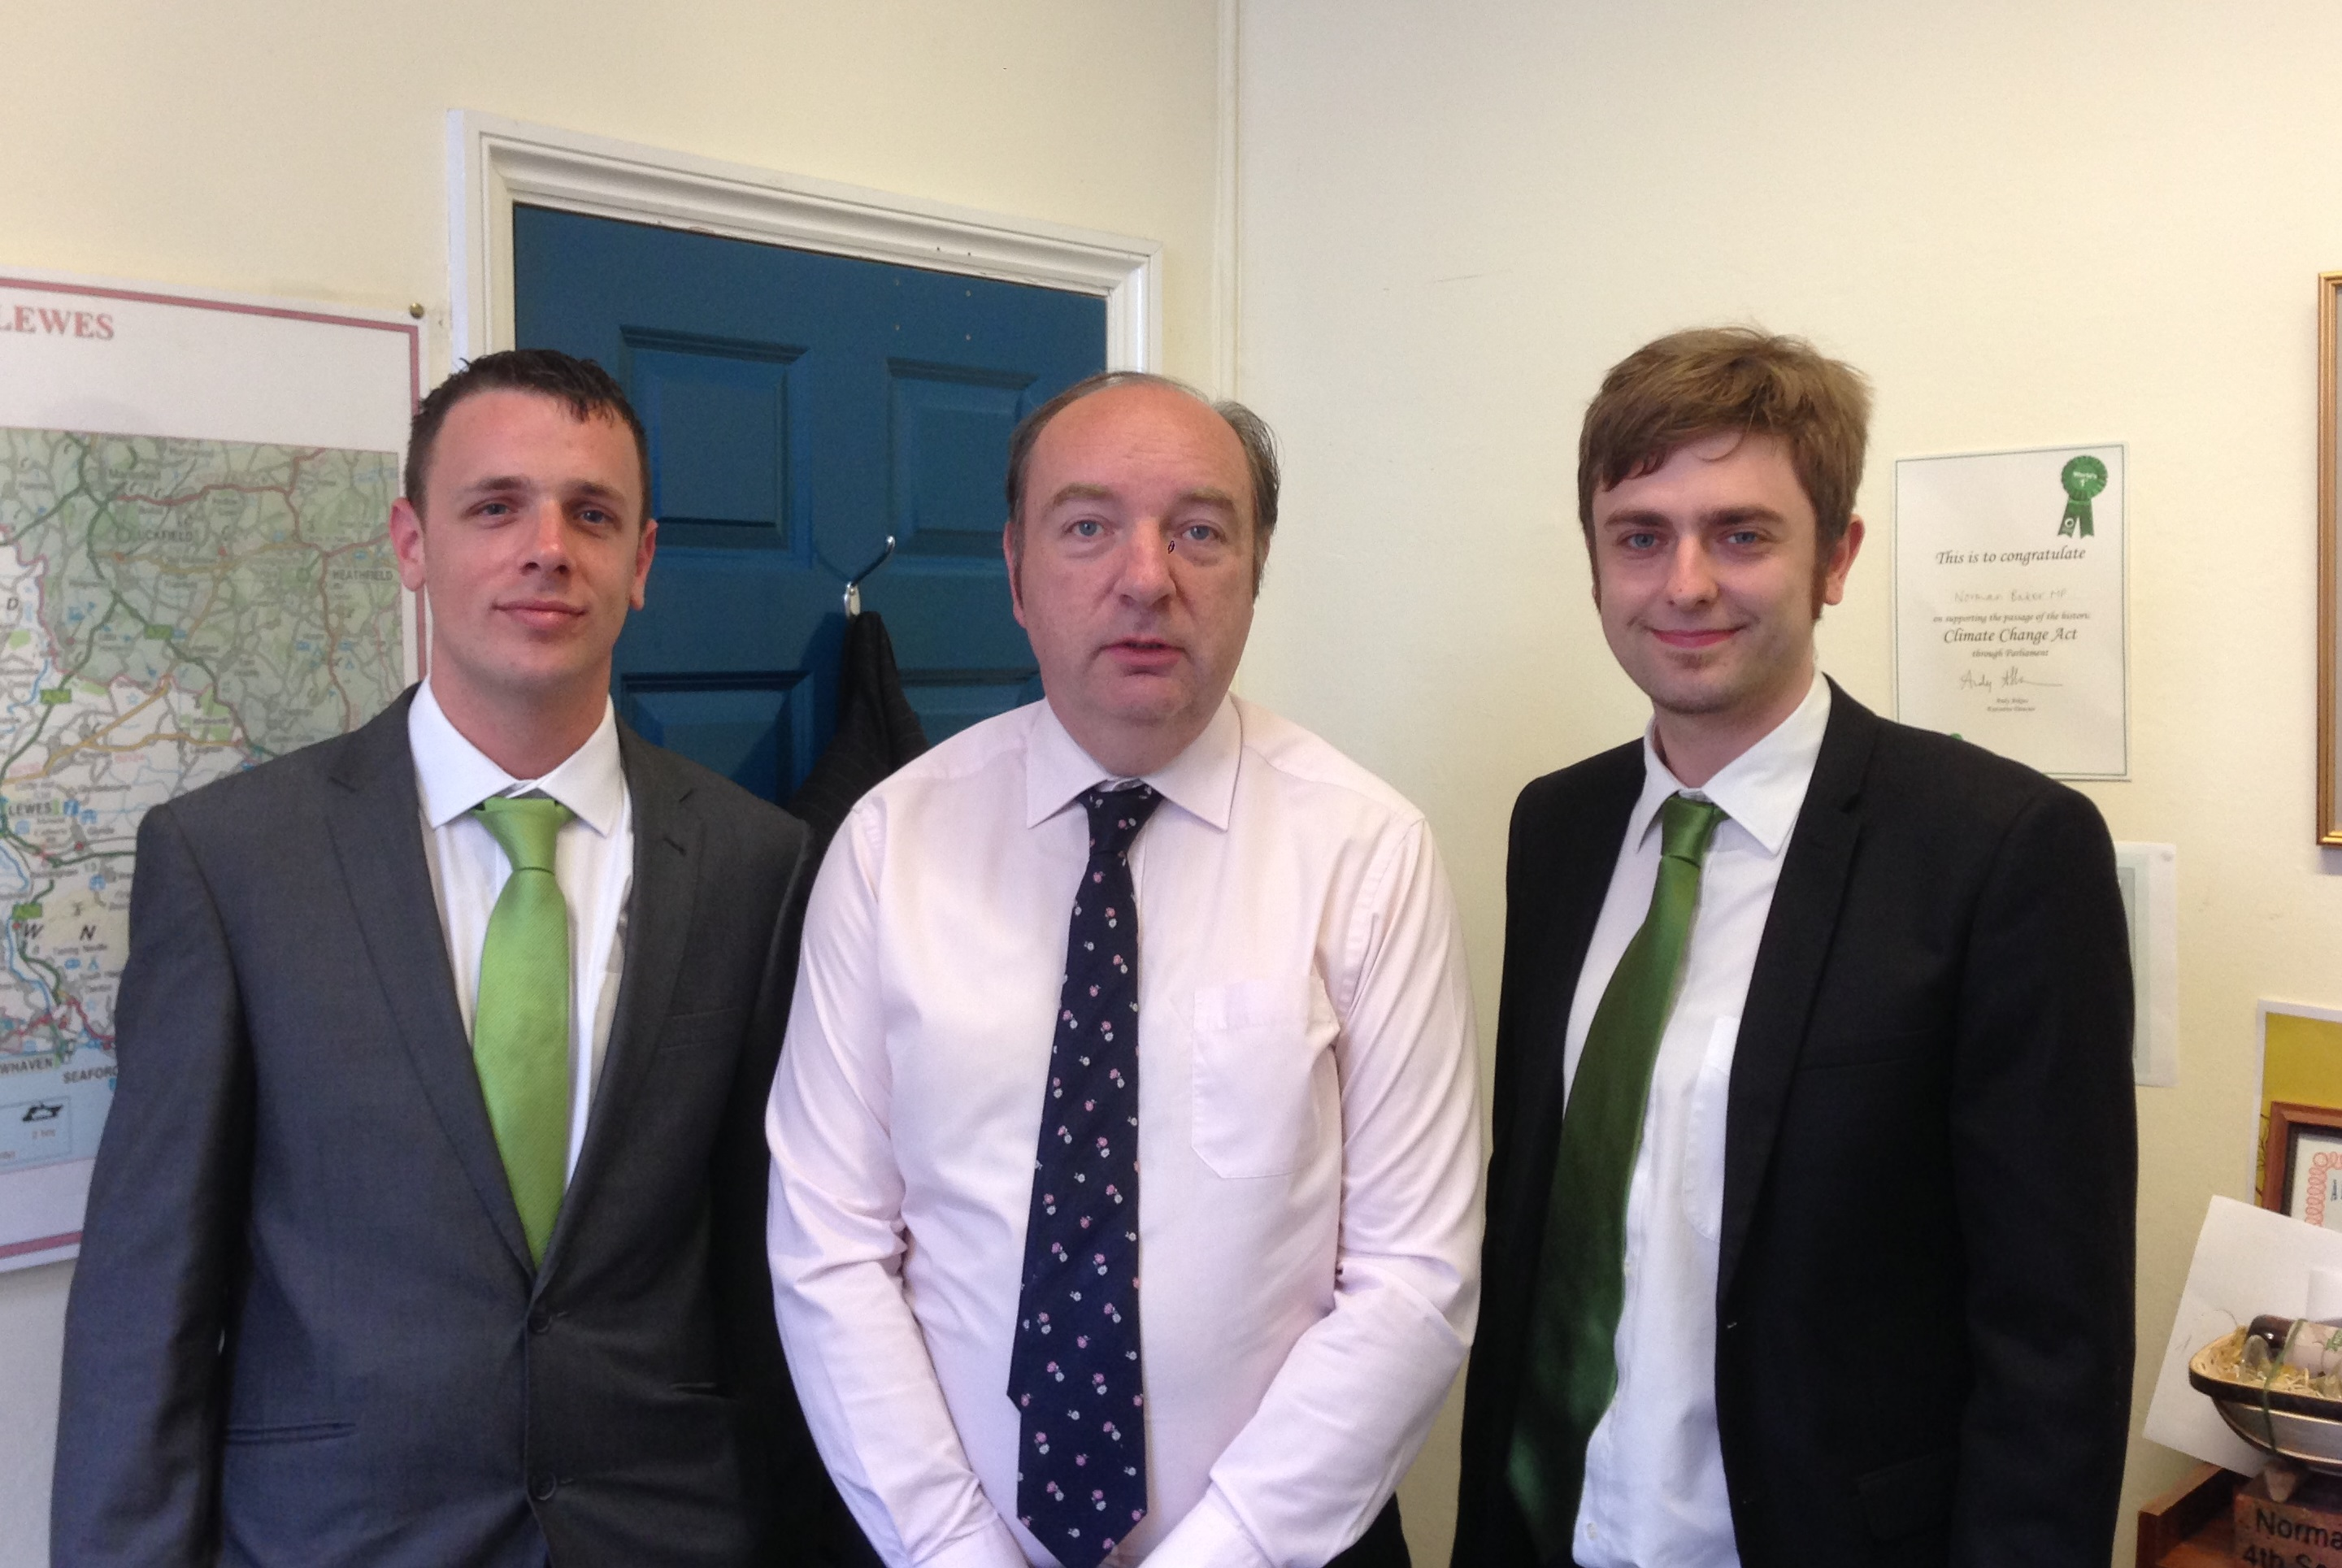 clark french, keiron reeves and norman baker MP